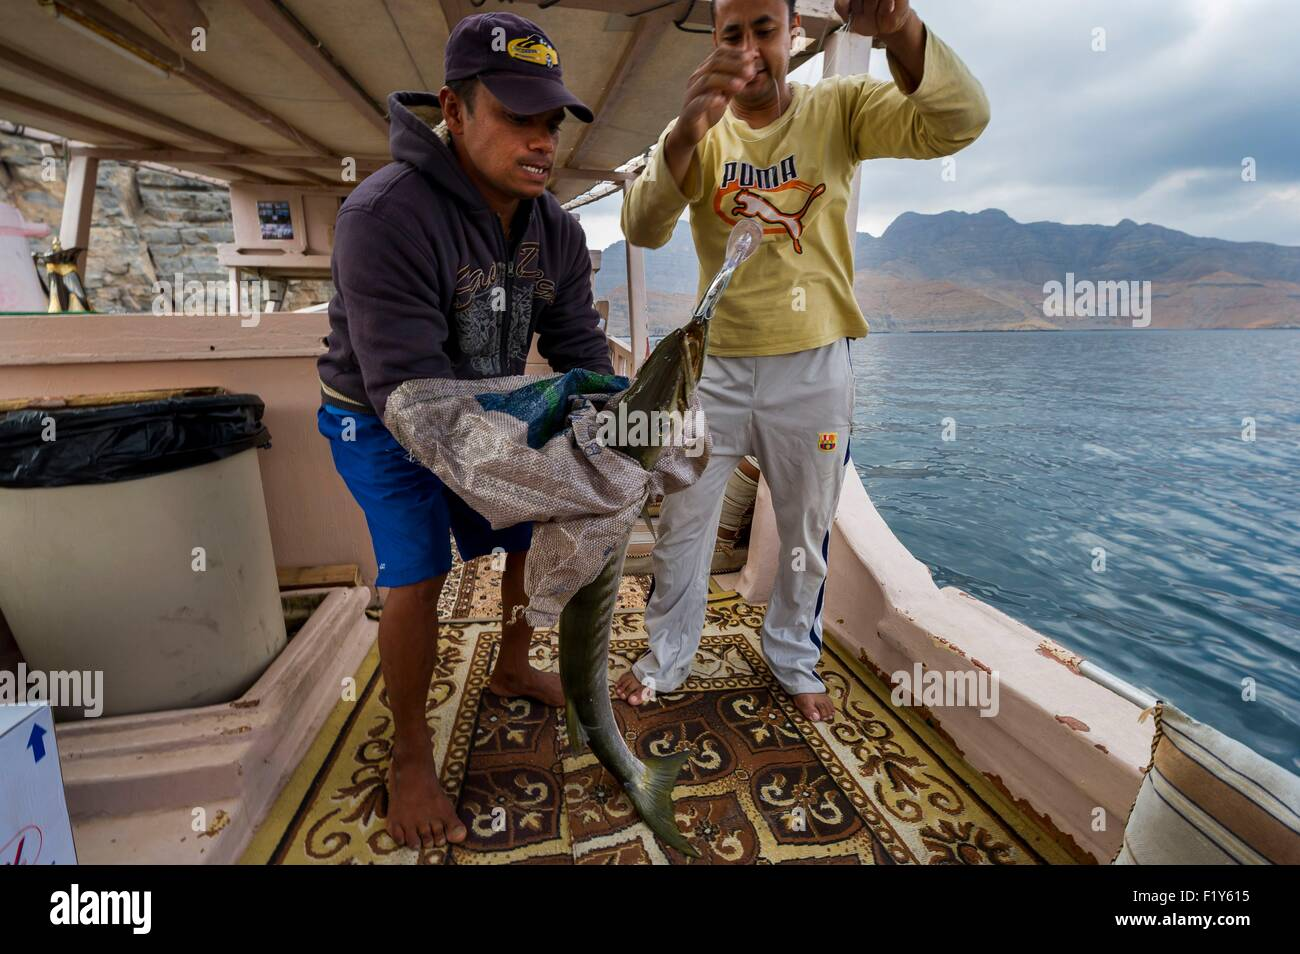 Fishing In Oman Stock Photos & Fishing In Oman Stock Images